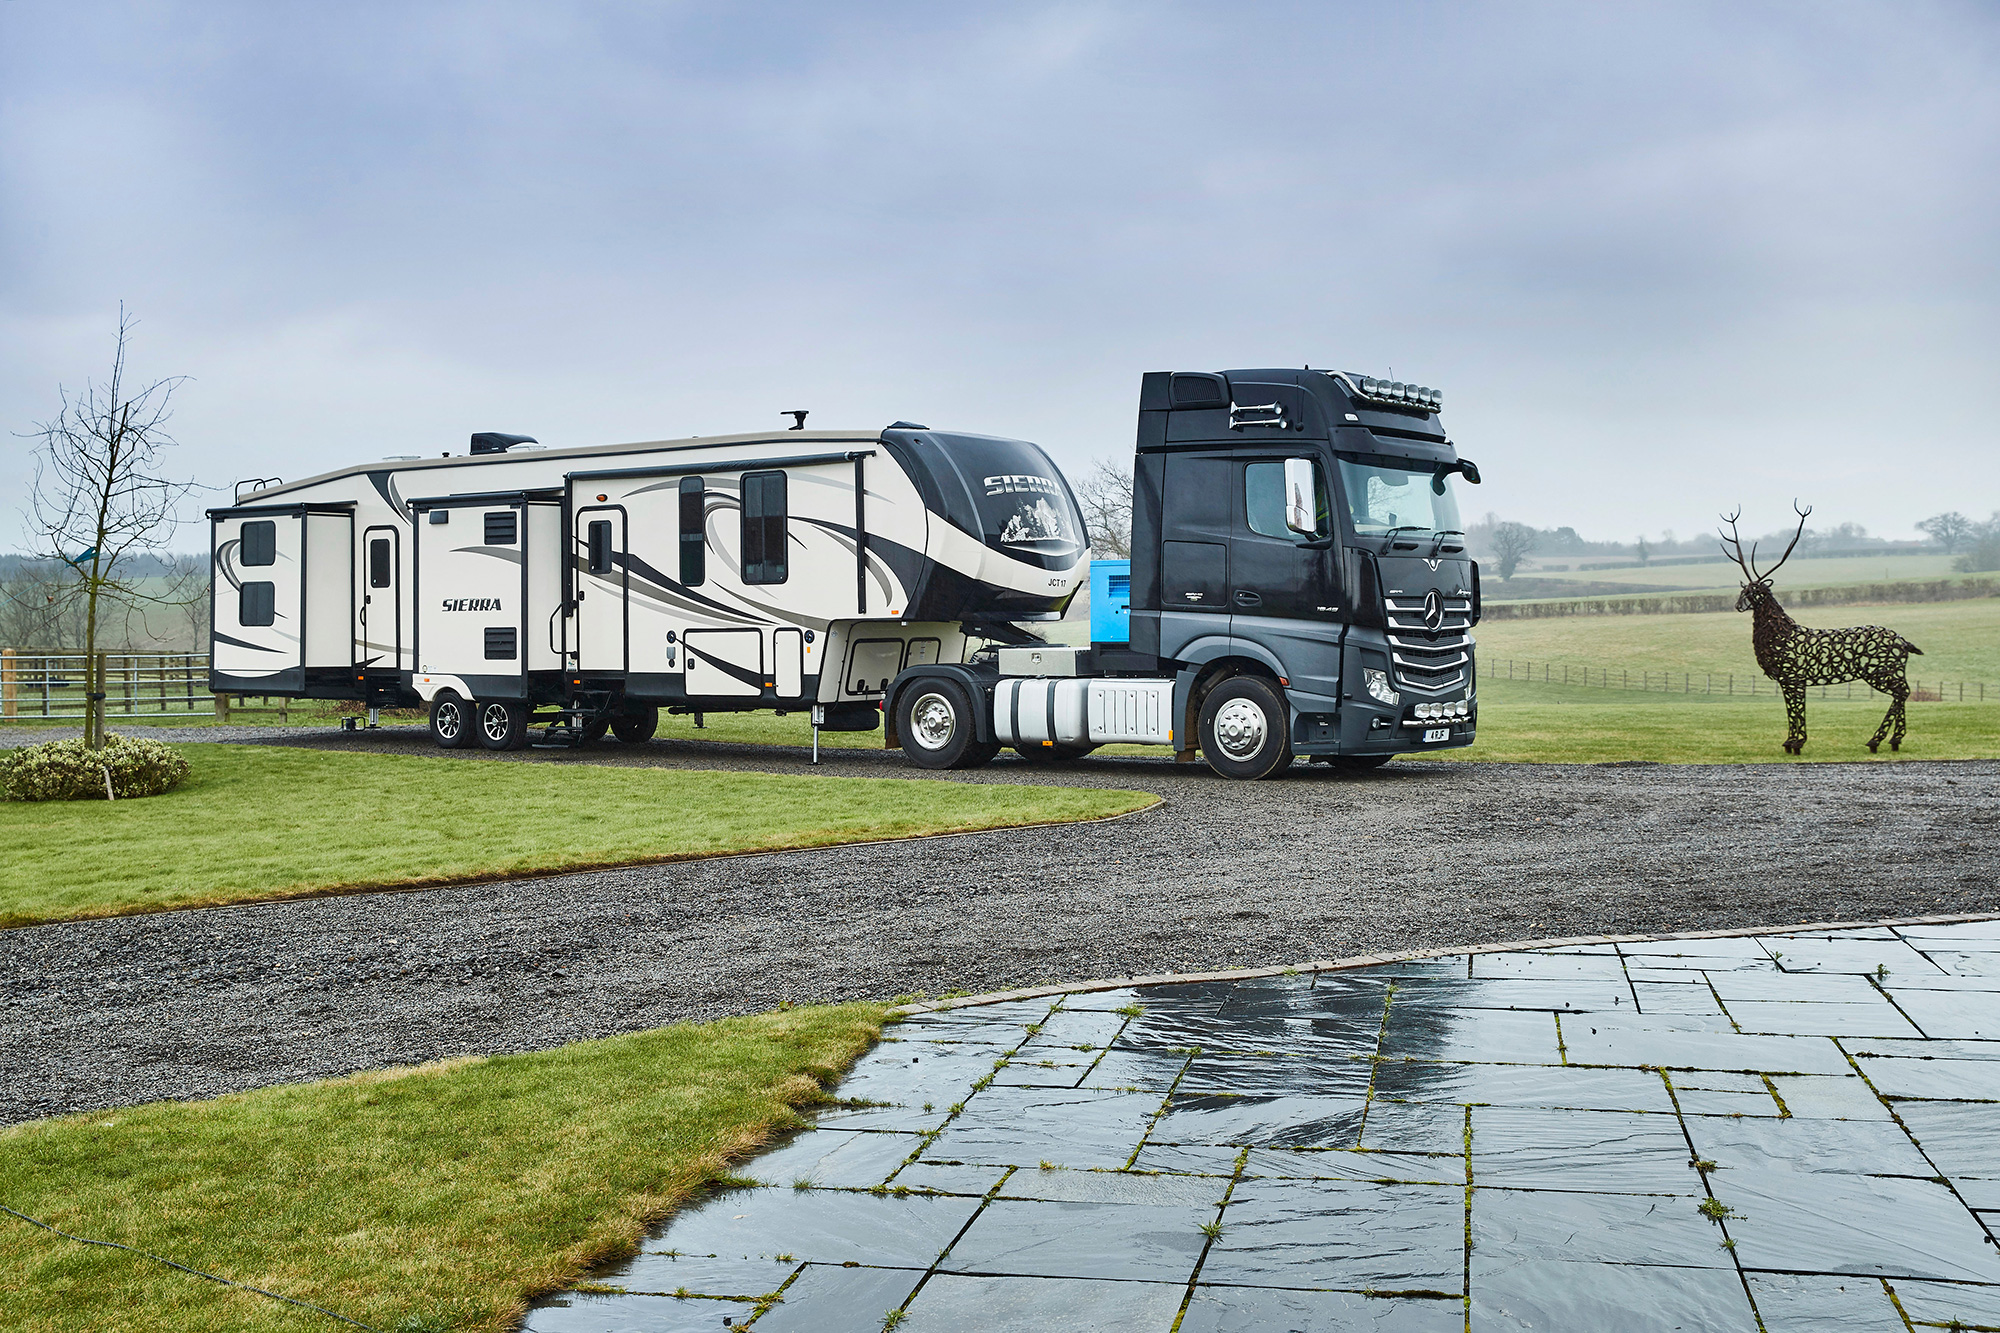 american-rvs-motorhomes-for-hire-uk-europe-2.jpg